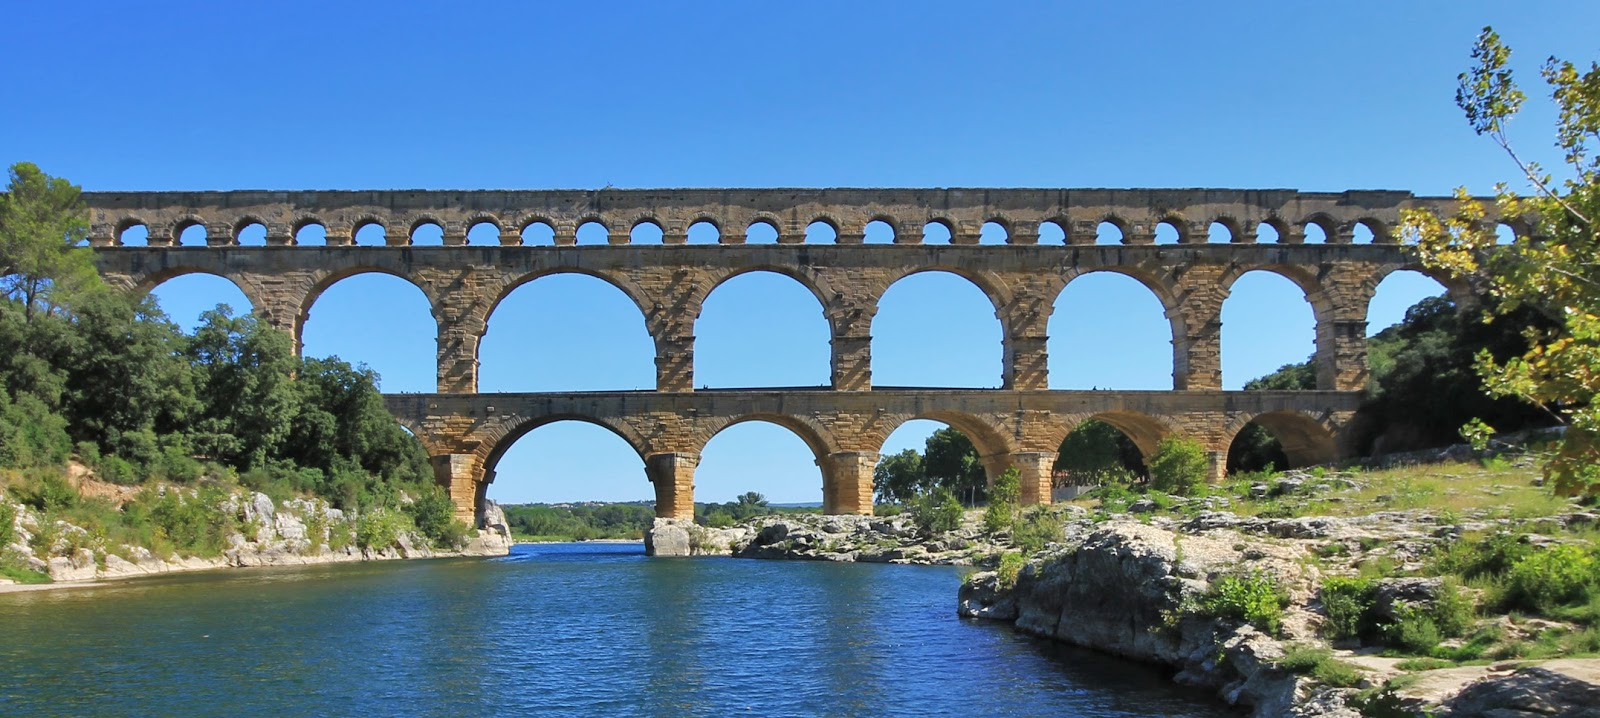 Where 39 s trevor pont du gard n mes france for Pont du gard architecte